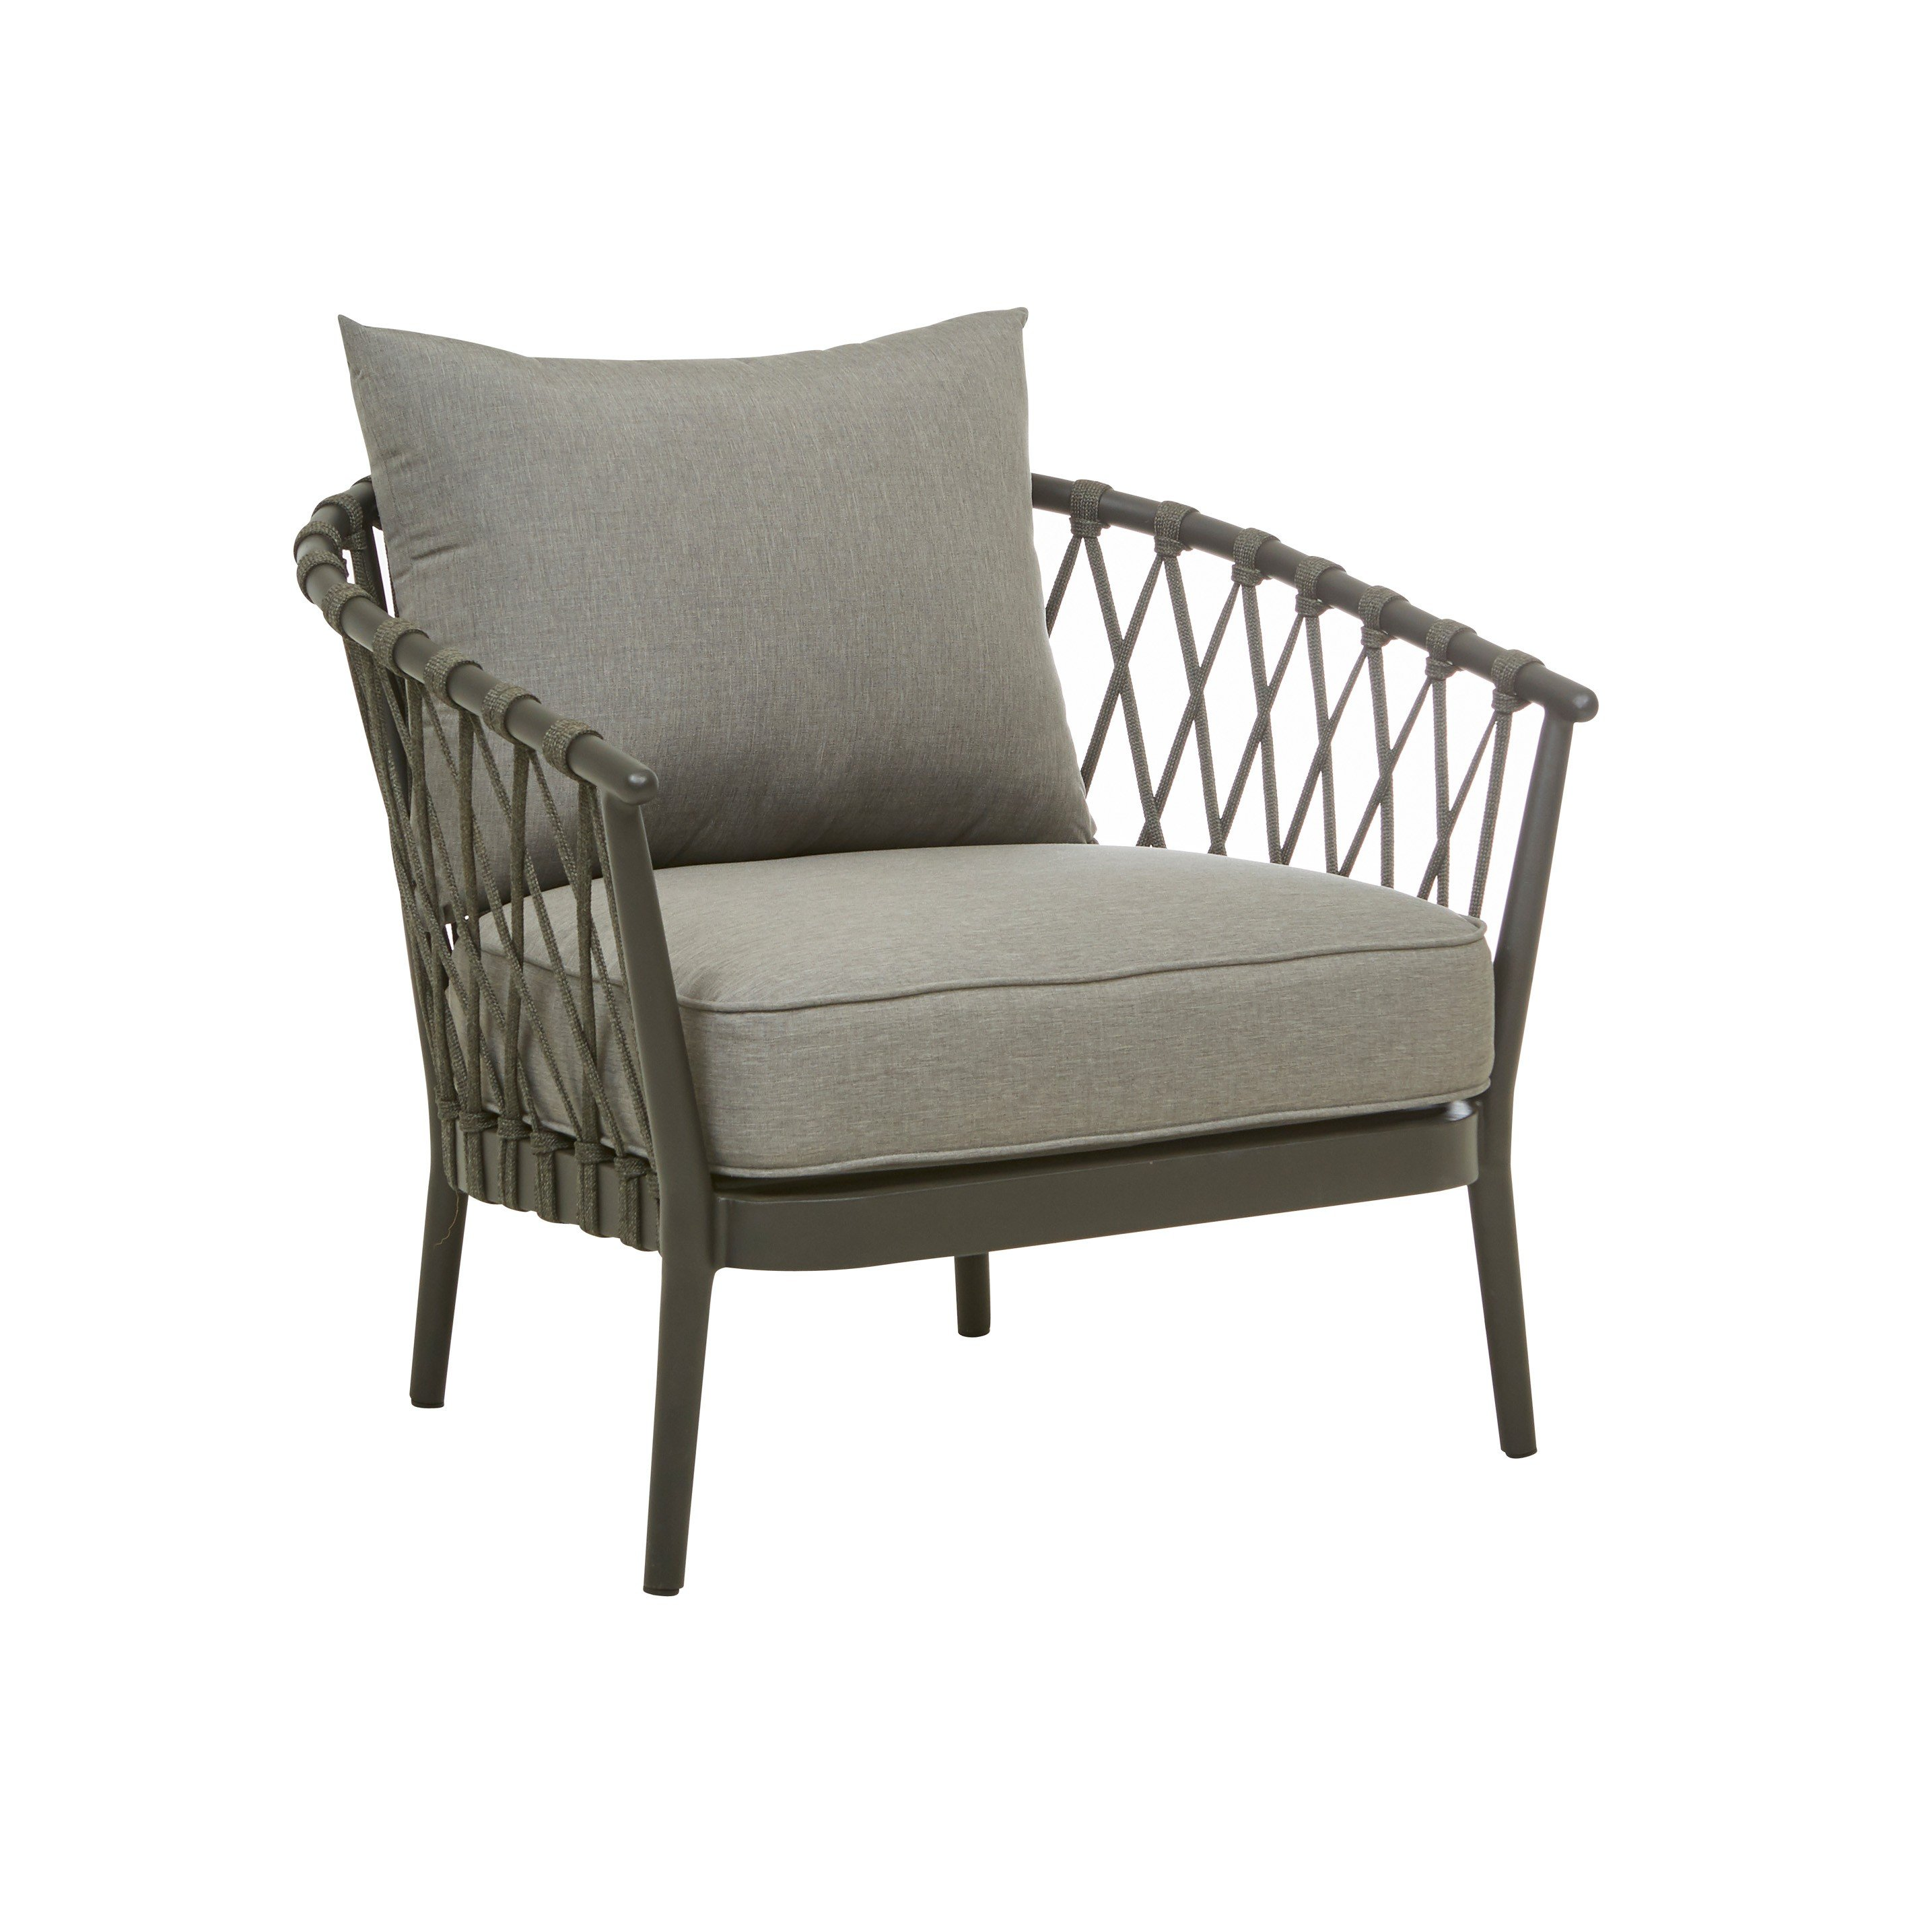 Furniture Hero-Images Sofas maui-one-seater-01